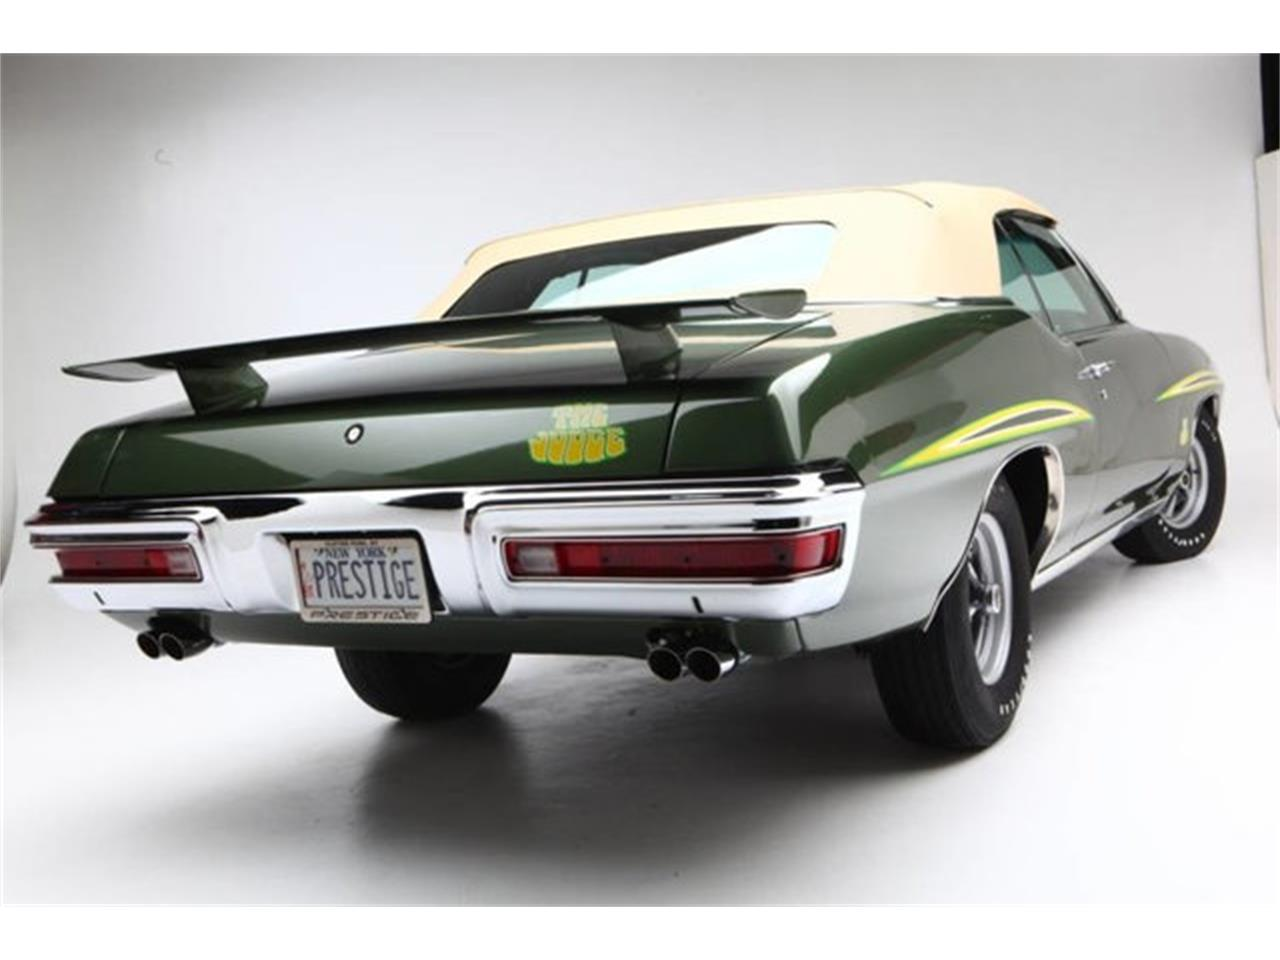 Large Picture of '70 GTO (The Judge) located in Clifton Park New York - $219,000.00 Offered by Prestige Motor Car Co. - QDN8